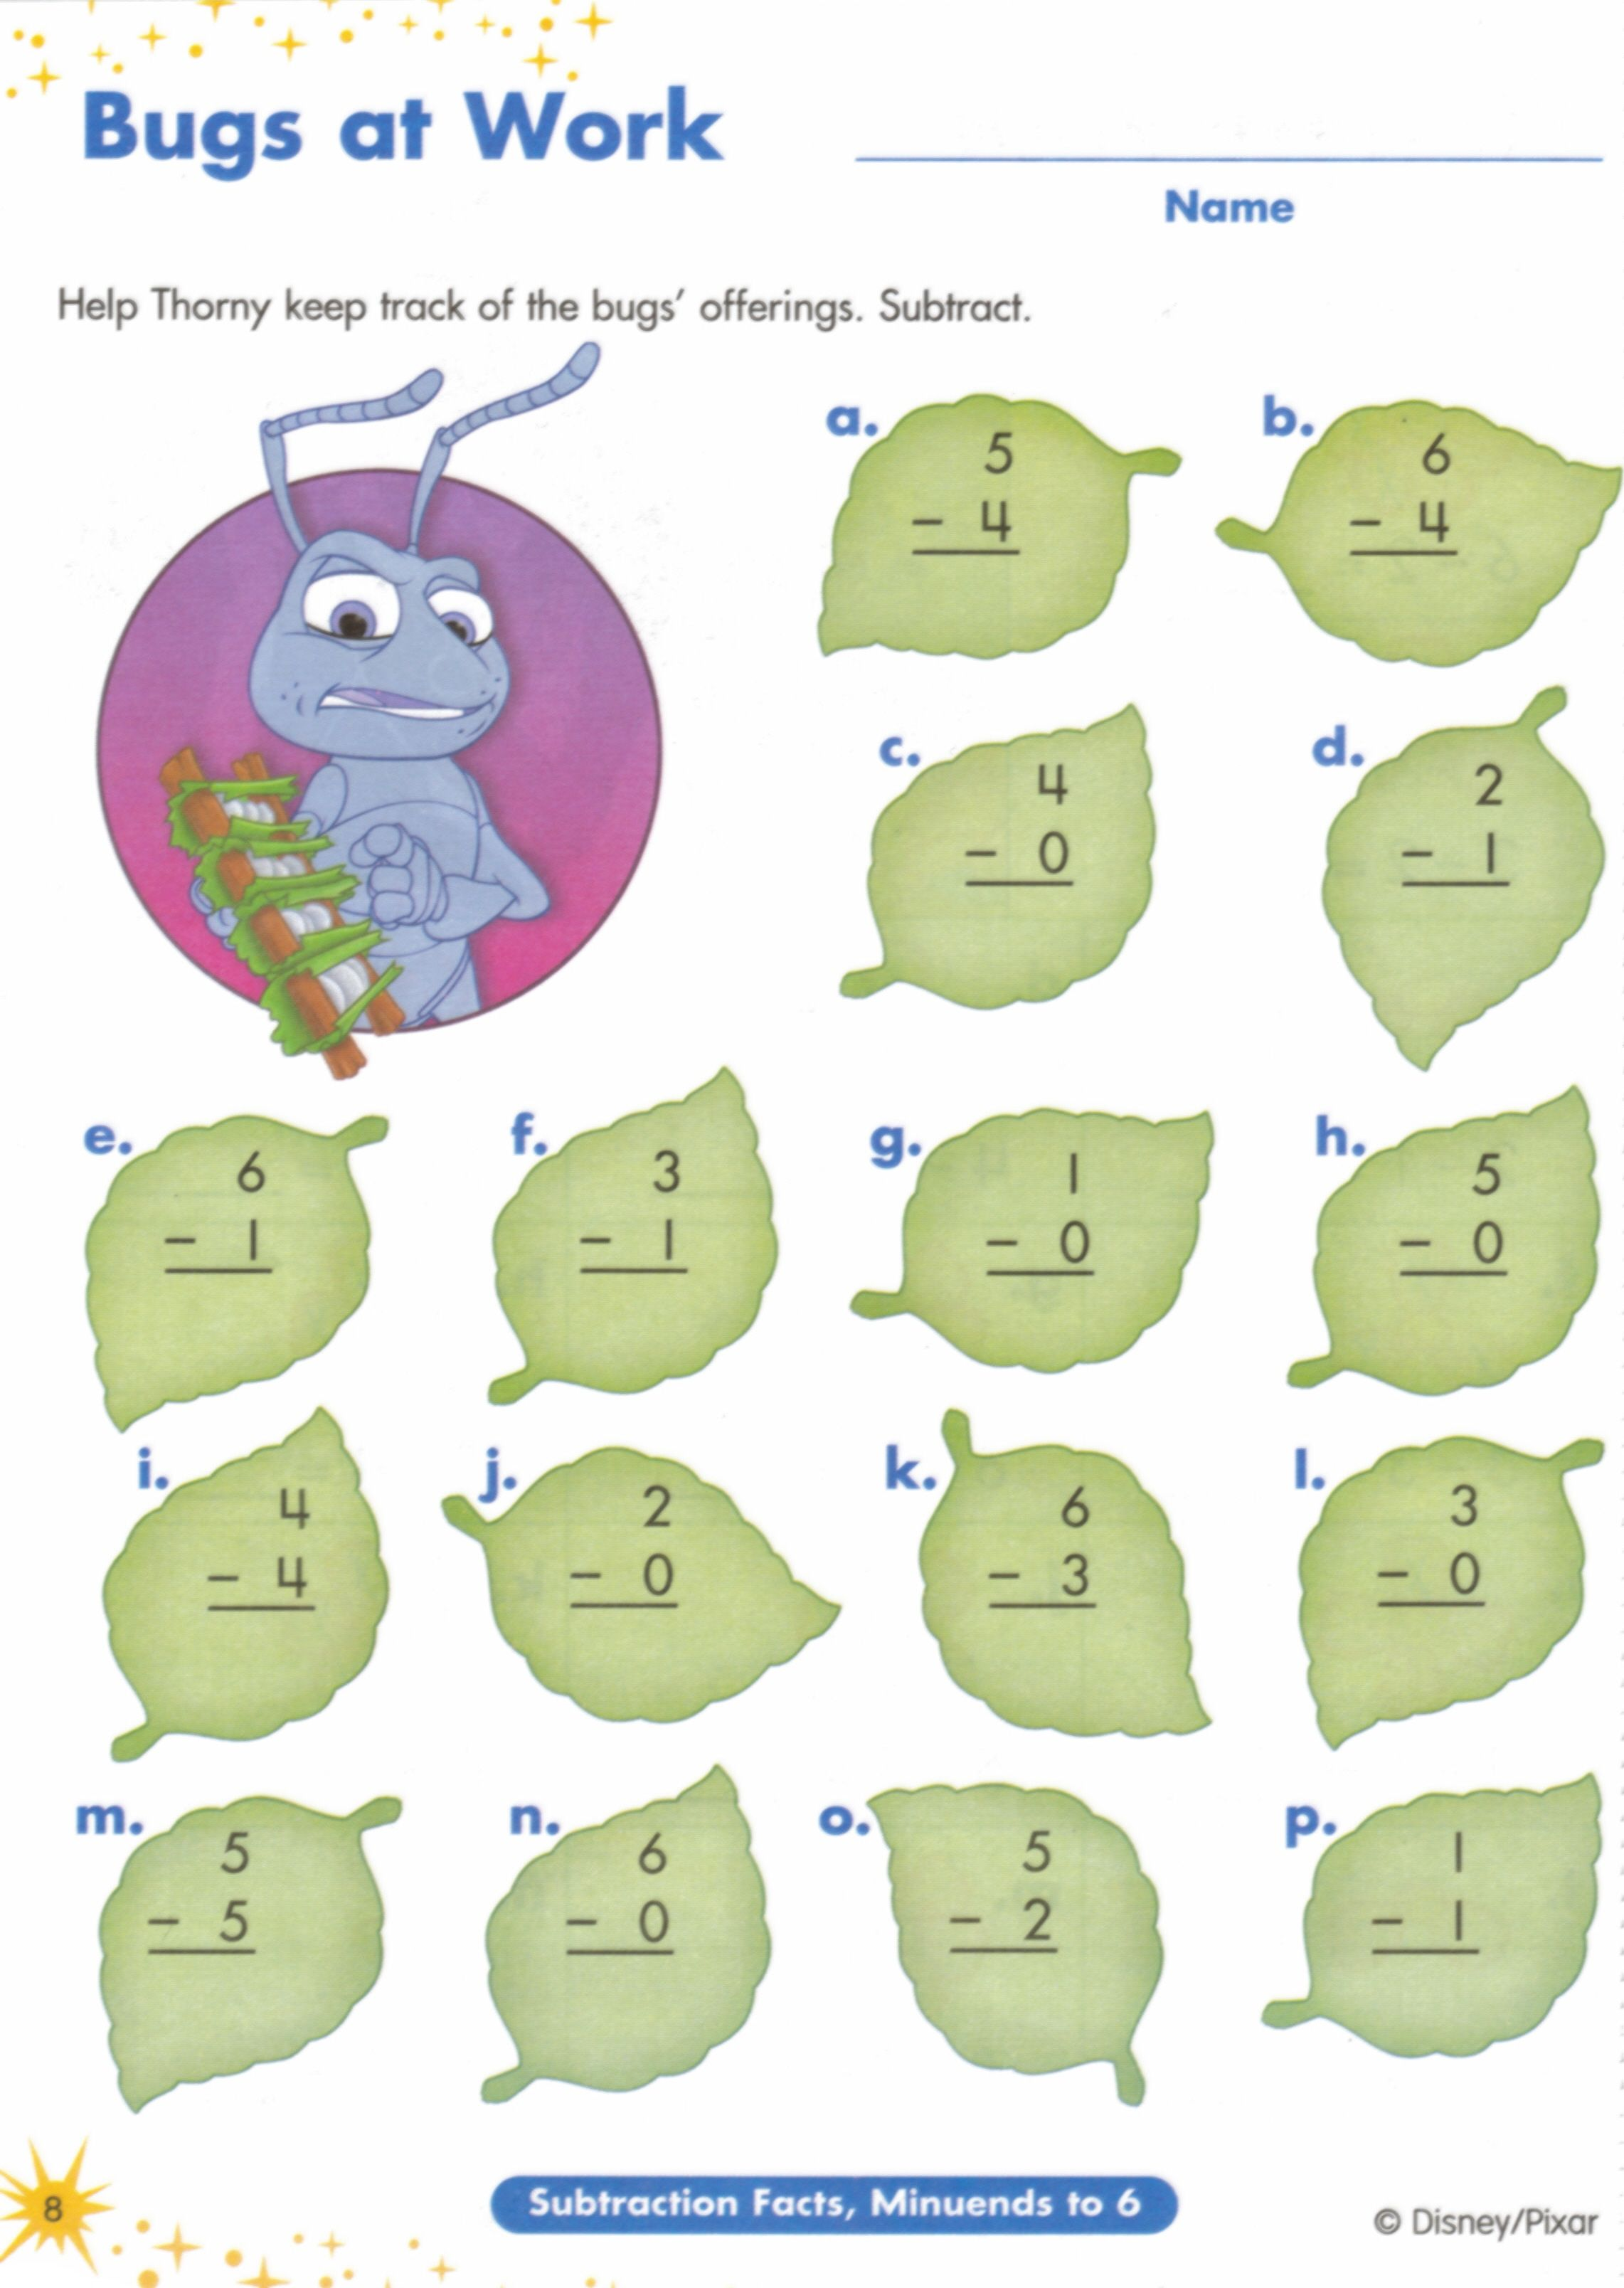 Proatmealus  Outstanding  Images About Worksheets On Pinterest  Fun Facts For Kids  With Inspiring  Images About Worksheets On Pinterest  Fun Facts For Kids Earth Day Worksheets And Jungles With Appealing Adverb Of Manner Worksheet Also Identify Pronouns Worksheet In Addition Prefix Im Worksheets And Changing Fractions Into Decimals Worksheet As Well As Free Computer Worksheets Additionally Energy Pyramids Worksheets From Pinterestcom With Proatmealus  Inspiring  Images About Worksheets On Pinterest  Fun Facts For Kids  With Appealing  Images About Worksheets On Pinterest  Fun Facts For Kids Earth Day Worksheets And Jungles And Outstanding Adverb Of Manner Worksheet Also Identify Pronouns Worksheet In Addition Prefix Im Worksheets From Pinterestcom